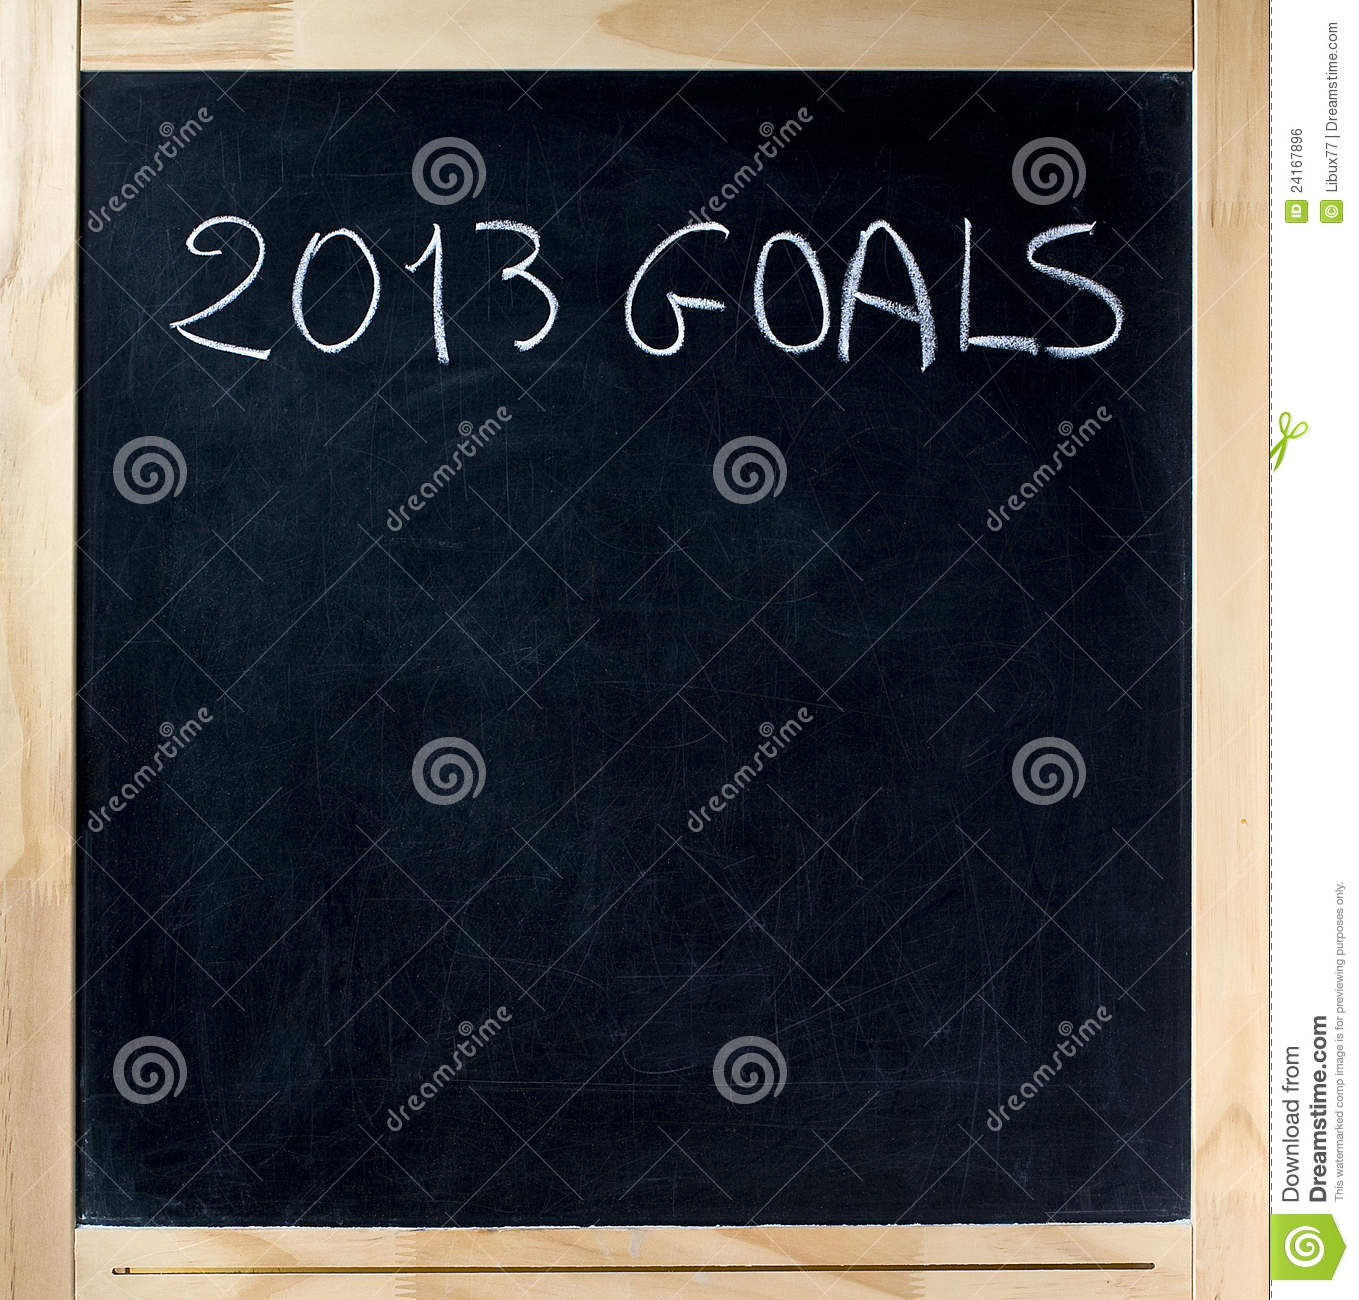 2013 Goals Title On Chalkboard